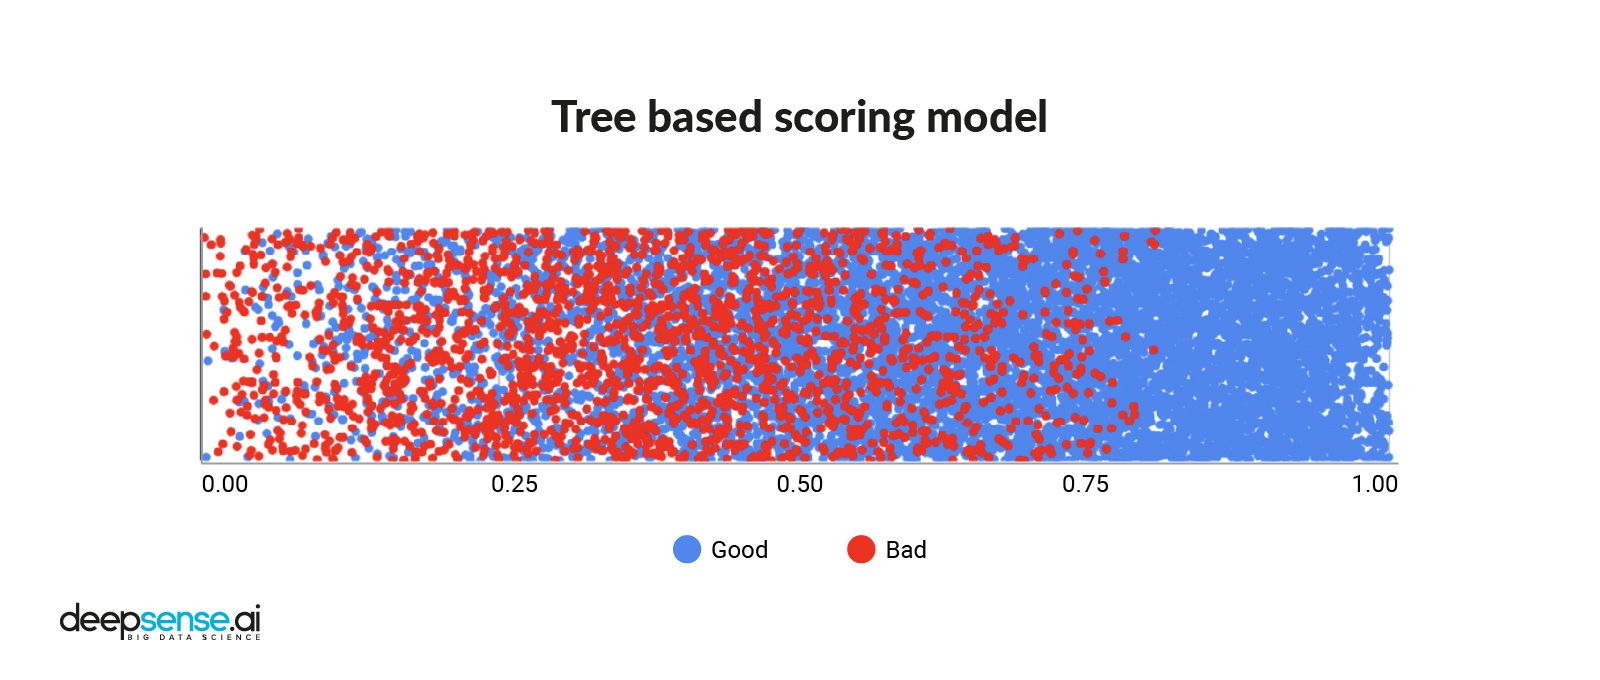 Credit scoring from tree-based model